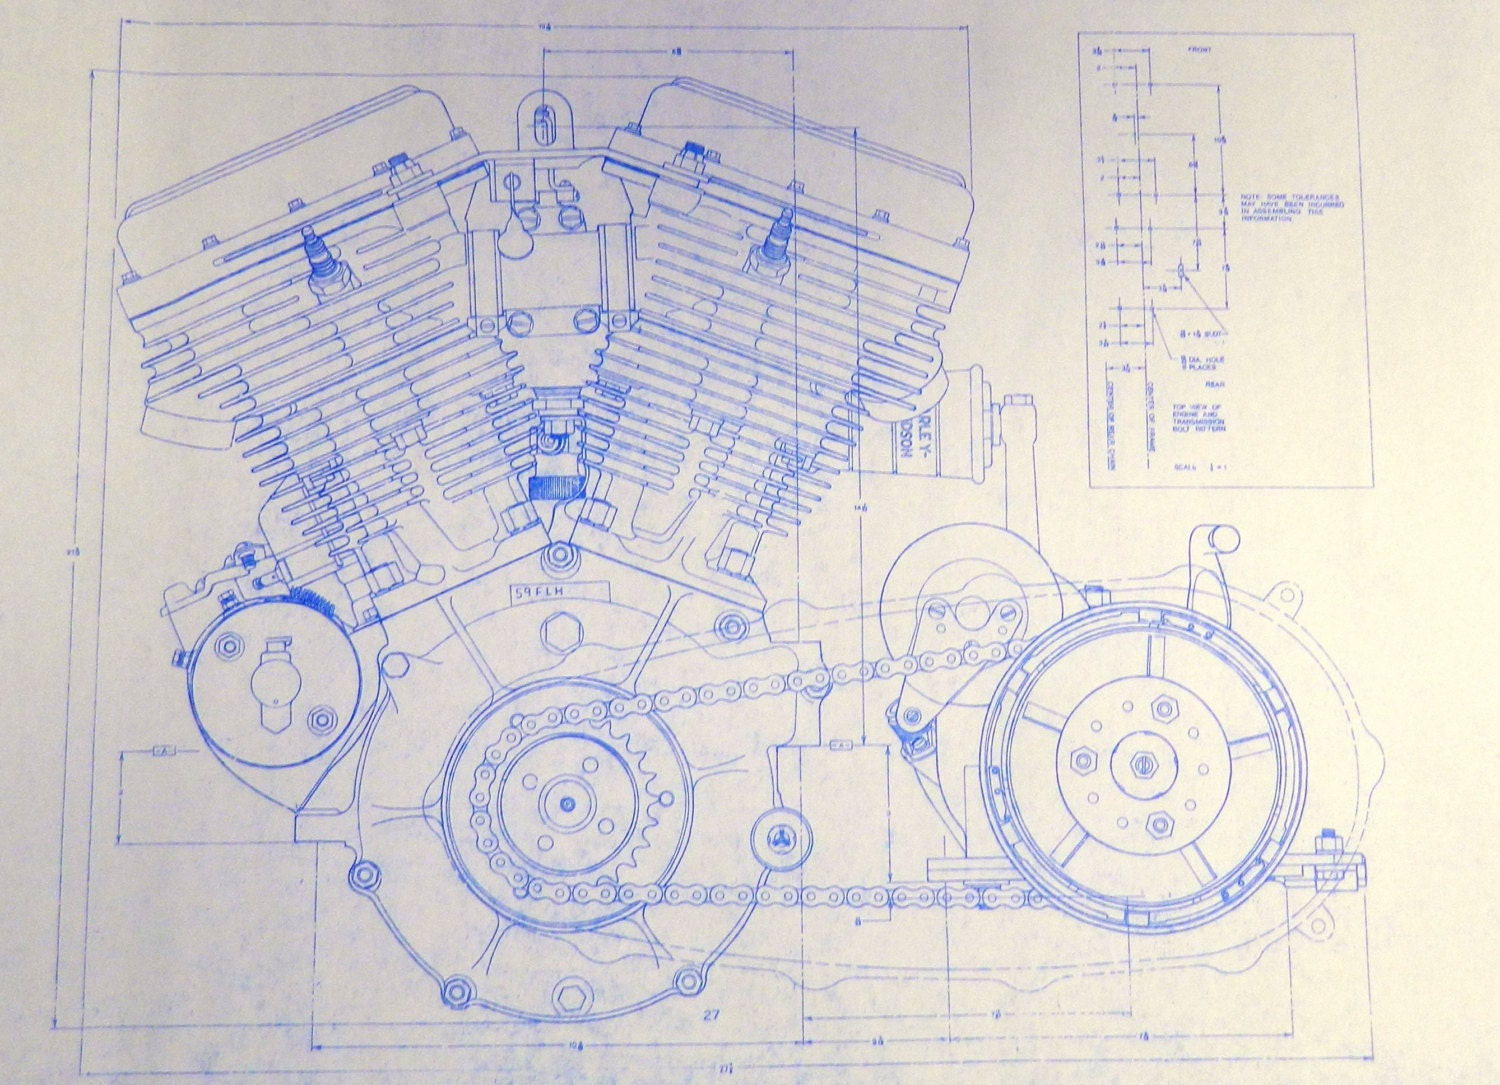 Harley davidson 74 ci engine 2 sheets blueprint by for Where to buy blueprint paper